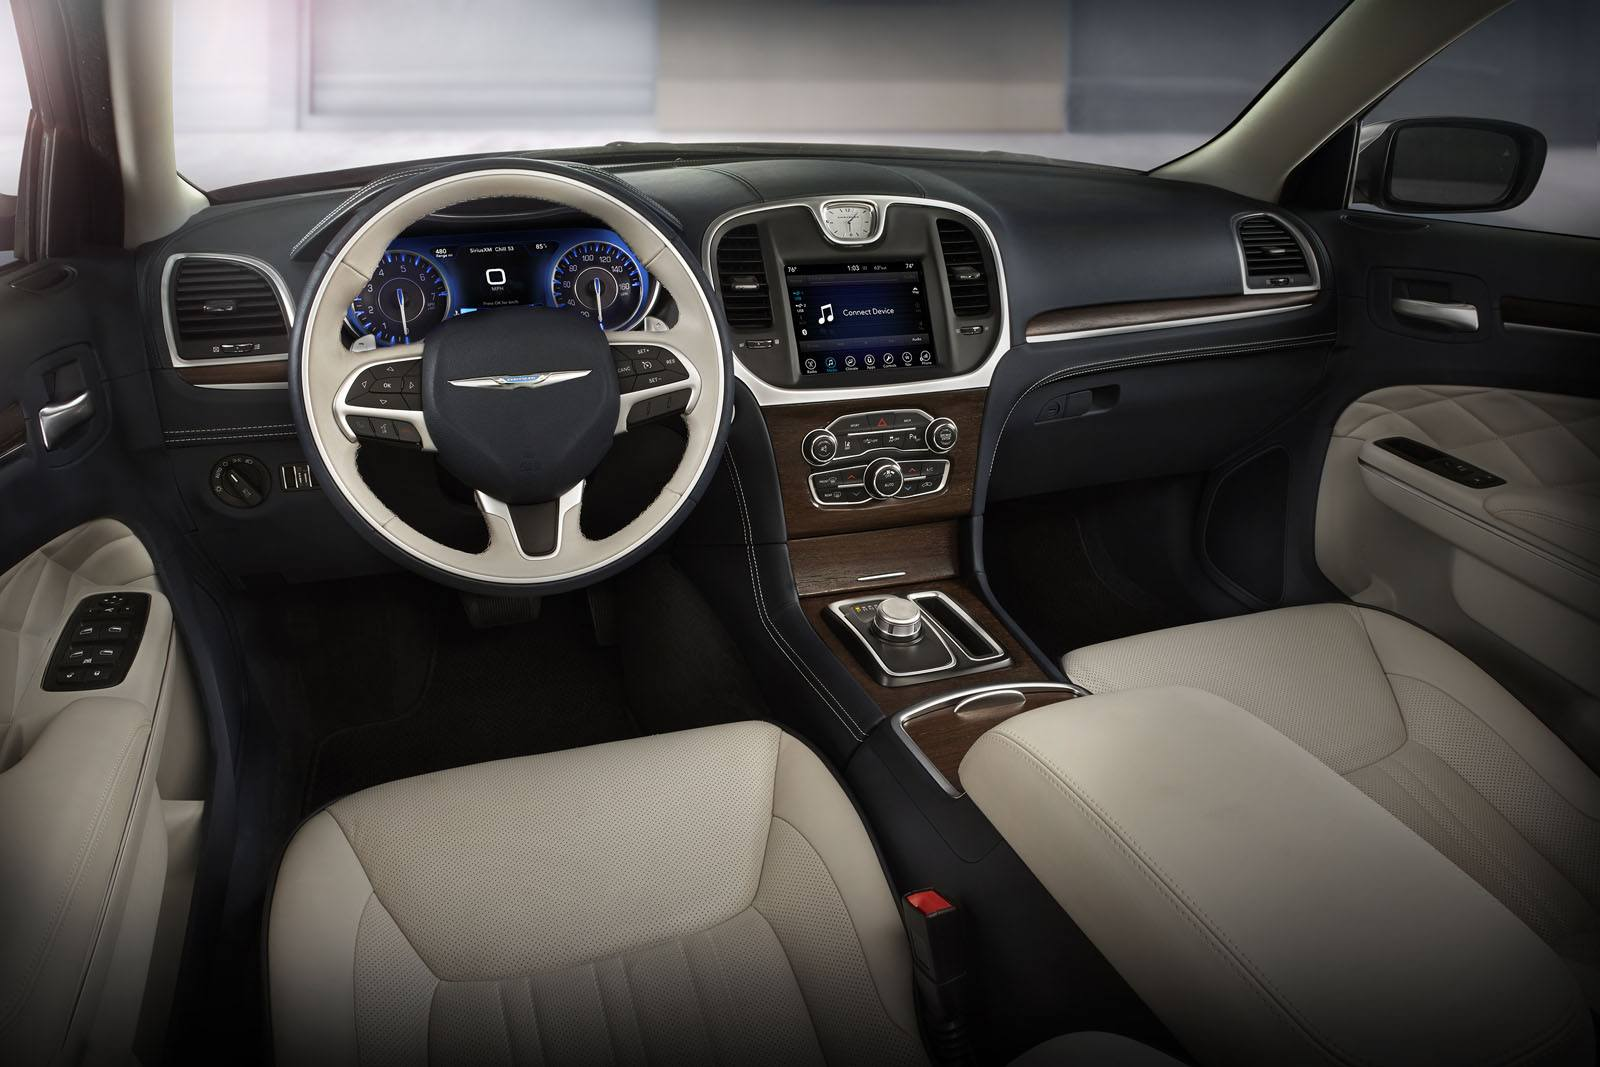 2018 Chrysler 300C, interior